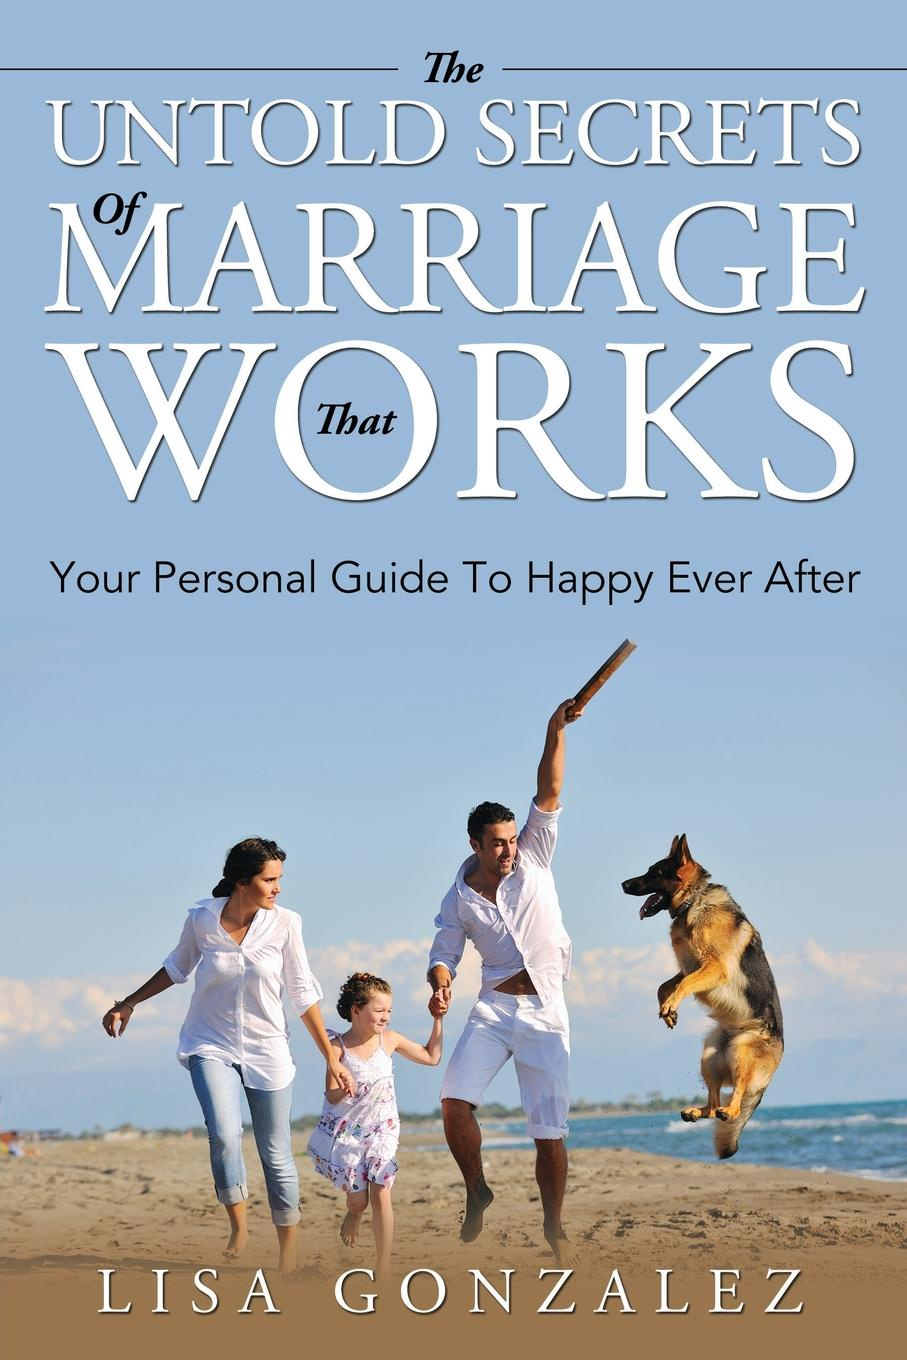 цена Lisa Gonzalez The Untold Secrets Of A Marriage That Works. Your Personal Guide To Happy Ever After онлайн в 2017 году